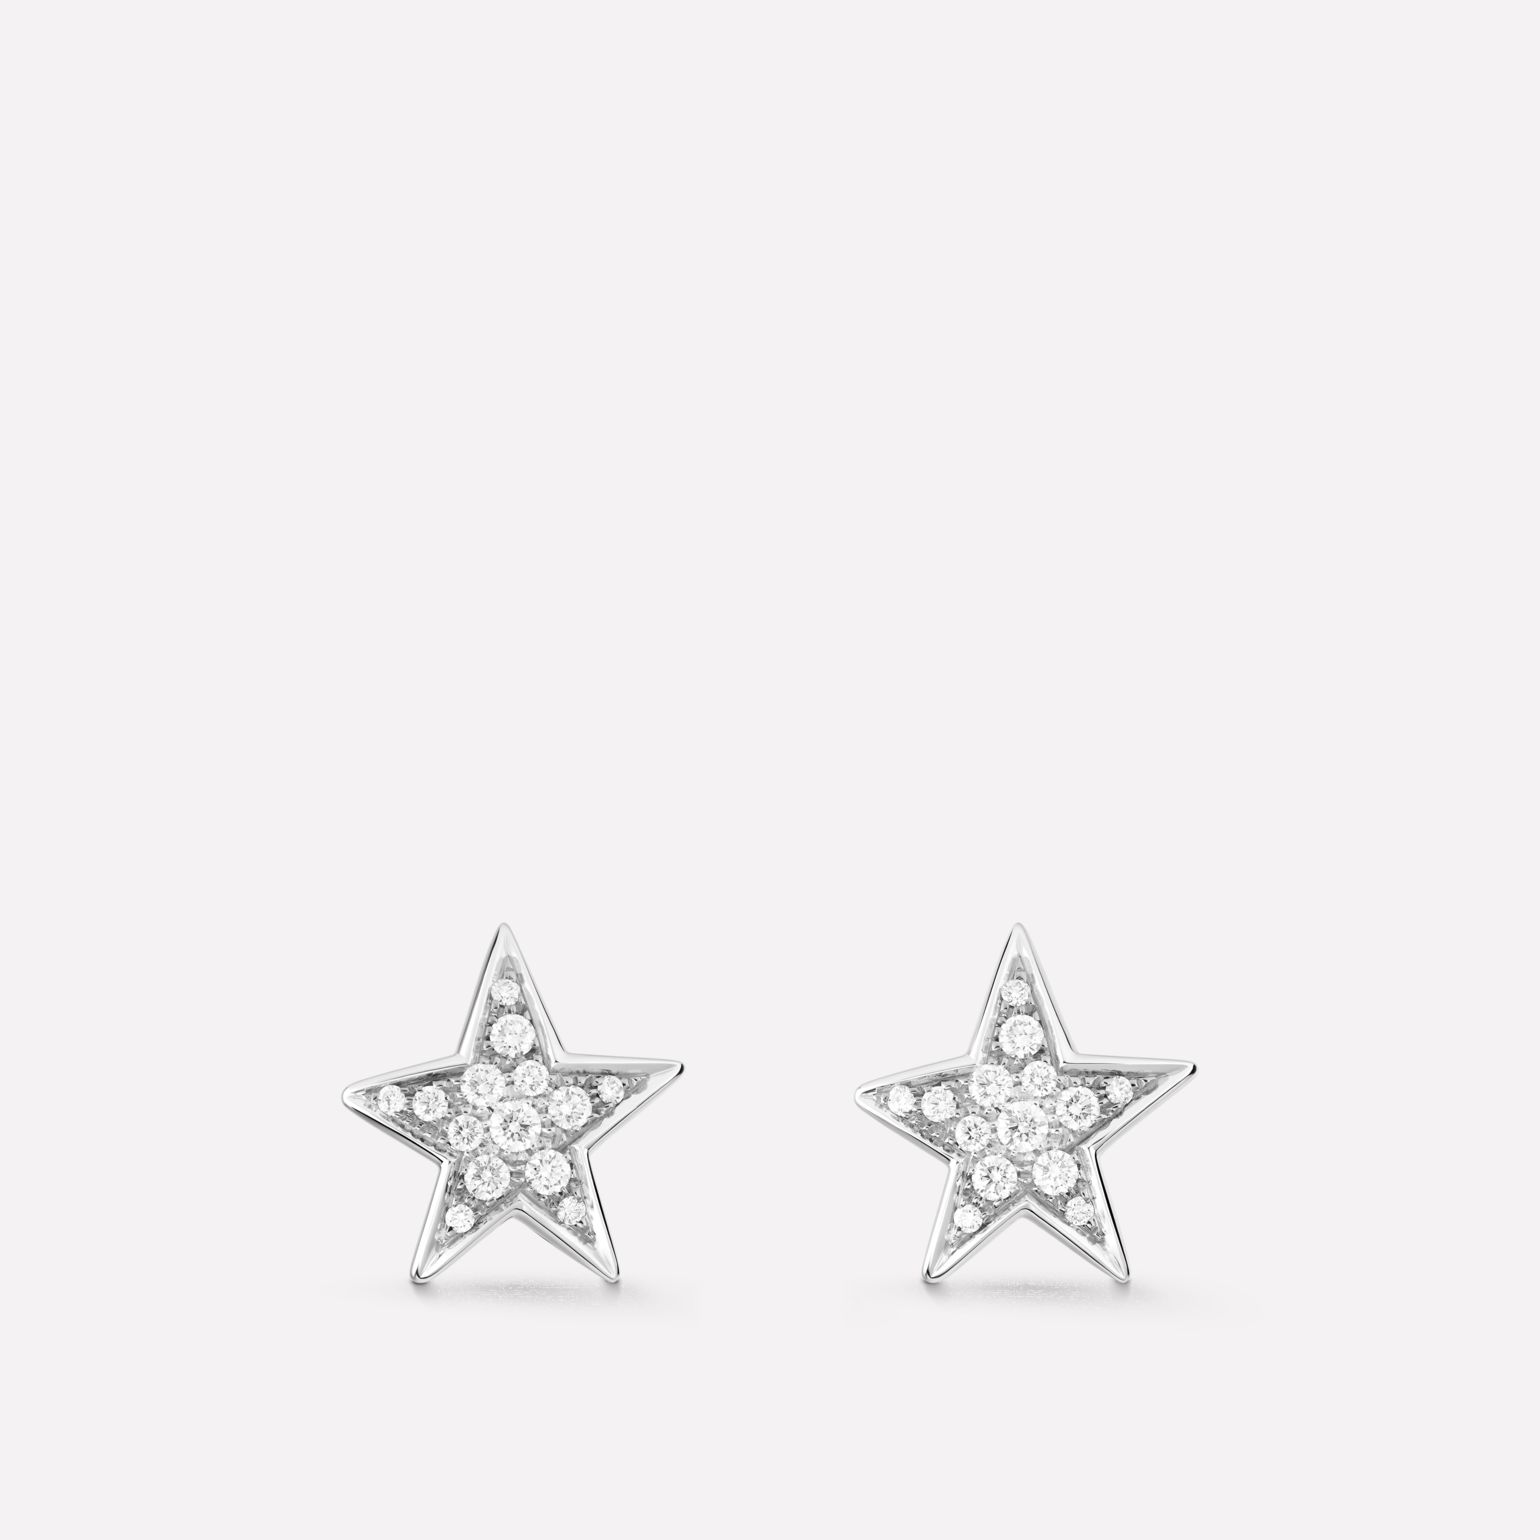 Comète Earrings Star earrings, in 18K white gold and diamonds. Medium version.